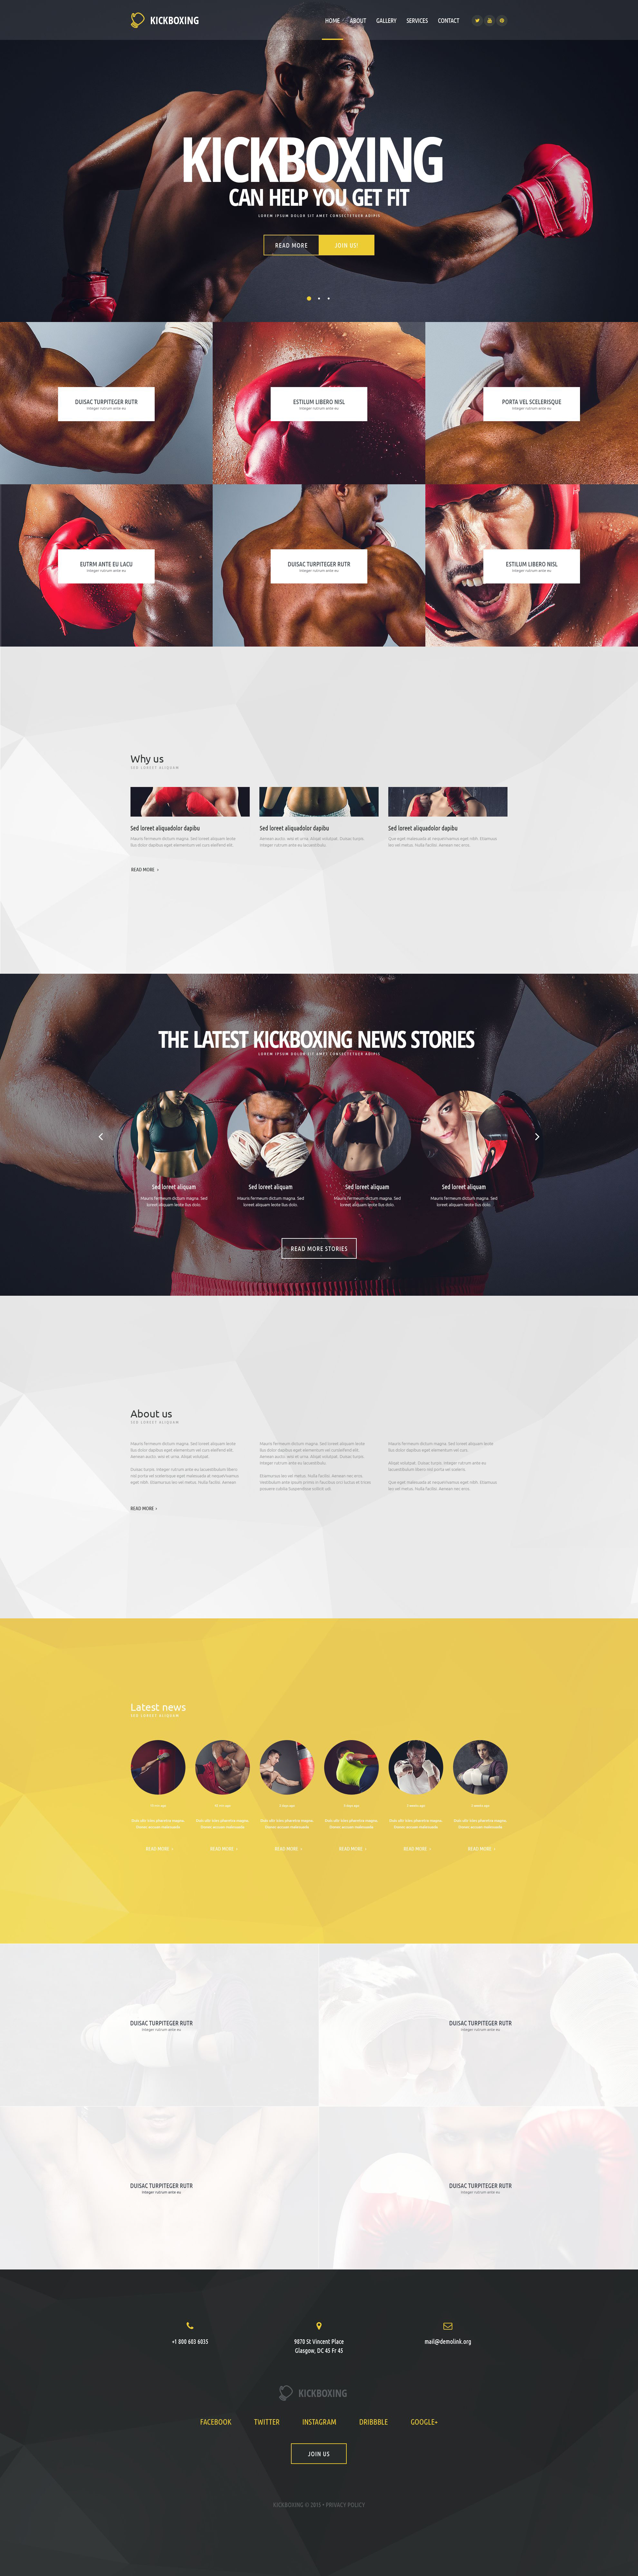 The Kickboxing Martial Responsive Javascript Animated Design 54569, one of the best website templates of its kind (sport, most popular), also known as kickboxing martial website template, arts website template, asia website template, asian website template, asians website template, training website template, fight website template, sport website template, fighter website template, sportsman website template, master website template, belt website template, weapon website template, kimono website template, judo website template, first website template, sword website template, will website template, pride website template, honour power school website template, coach website template, spirit website template, method website template, class website template, schedule website template, championship website template, world website template, martial website template, news website template, teacher website template, principles website template, instructors and related with kickboxing martial, arts, asia, asian, asians, training, fight, sport, fighter, sportsman, master, belt, weapon, kimono, judo, first, sword, will, pride, honour power school, coach, spirit, method, class, schedule, championship, world, martial, news, teacher, principles, instructors, etc.